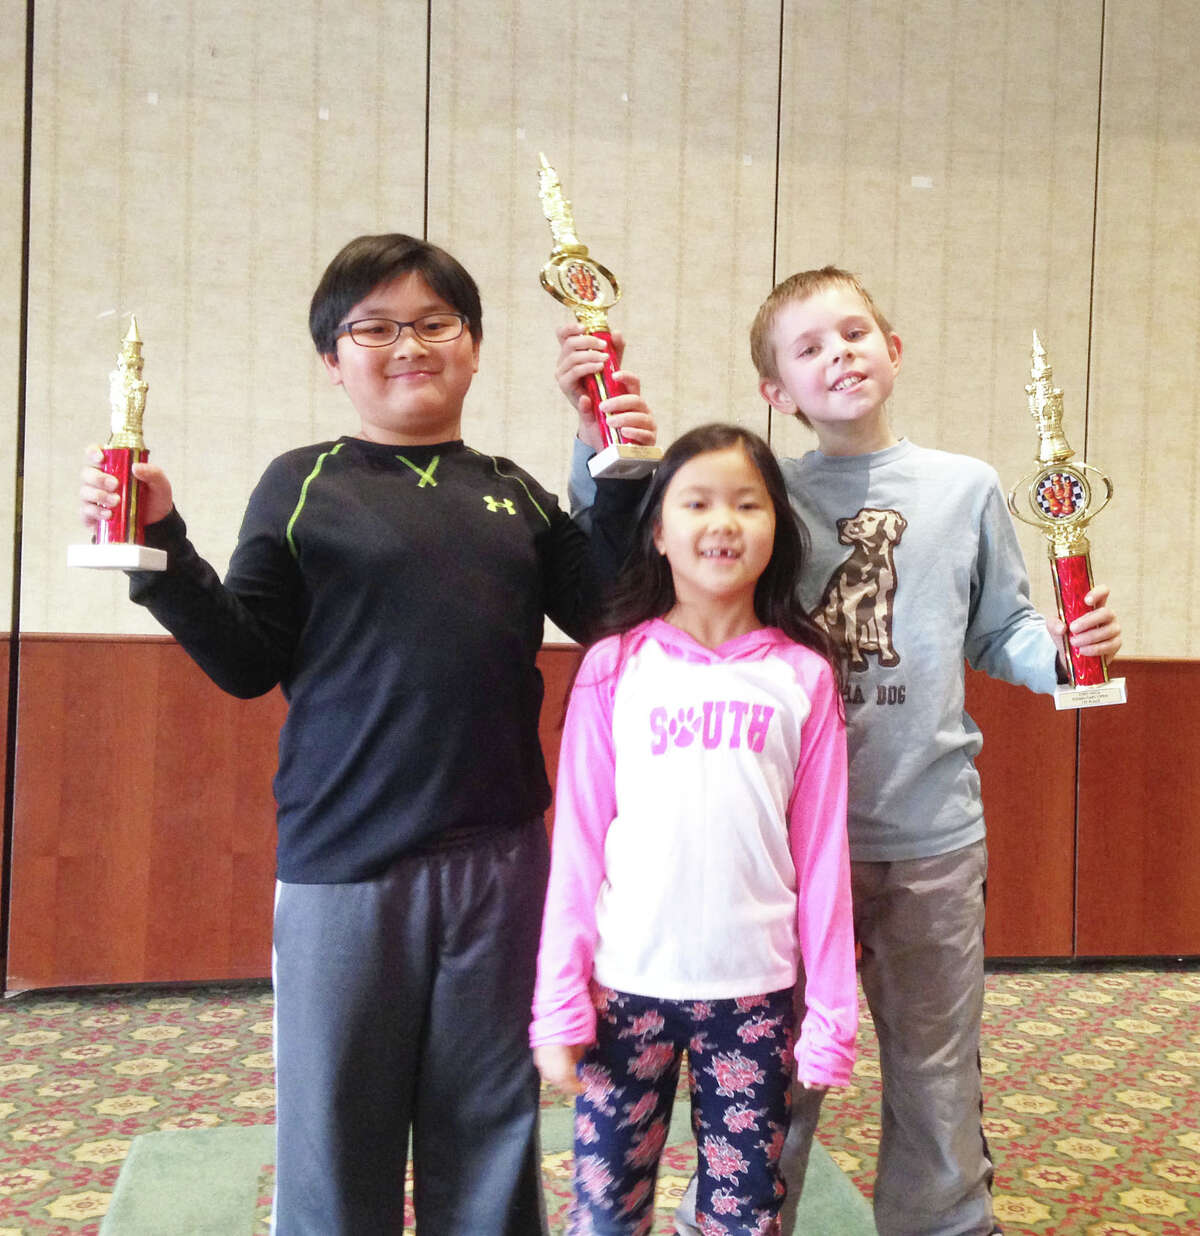 Among the contributors to the South Elementary School Chess Club's first place finish at a recent National Education Chess Association (NECA) tournament in Stamford were Joseph Ho, Jenna Ho, and Nathaniel Moor.